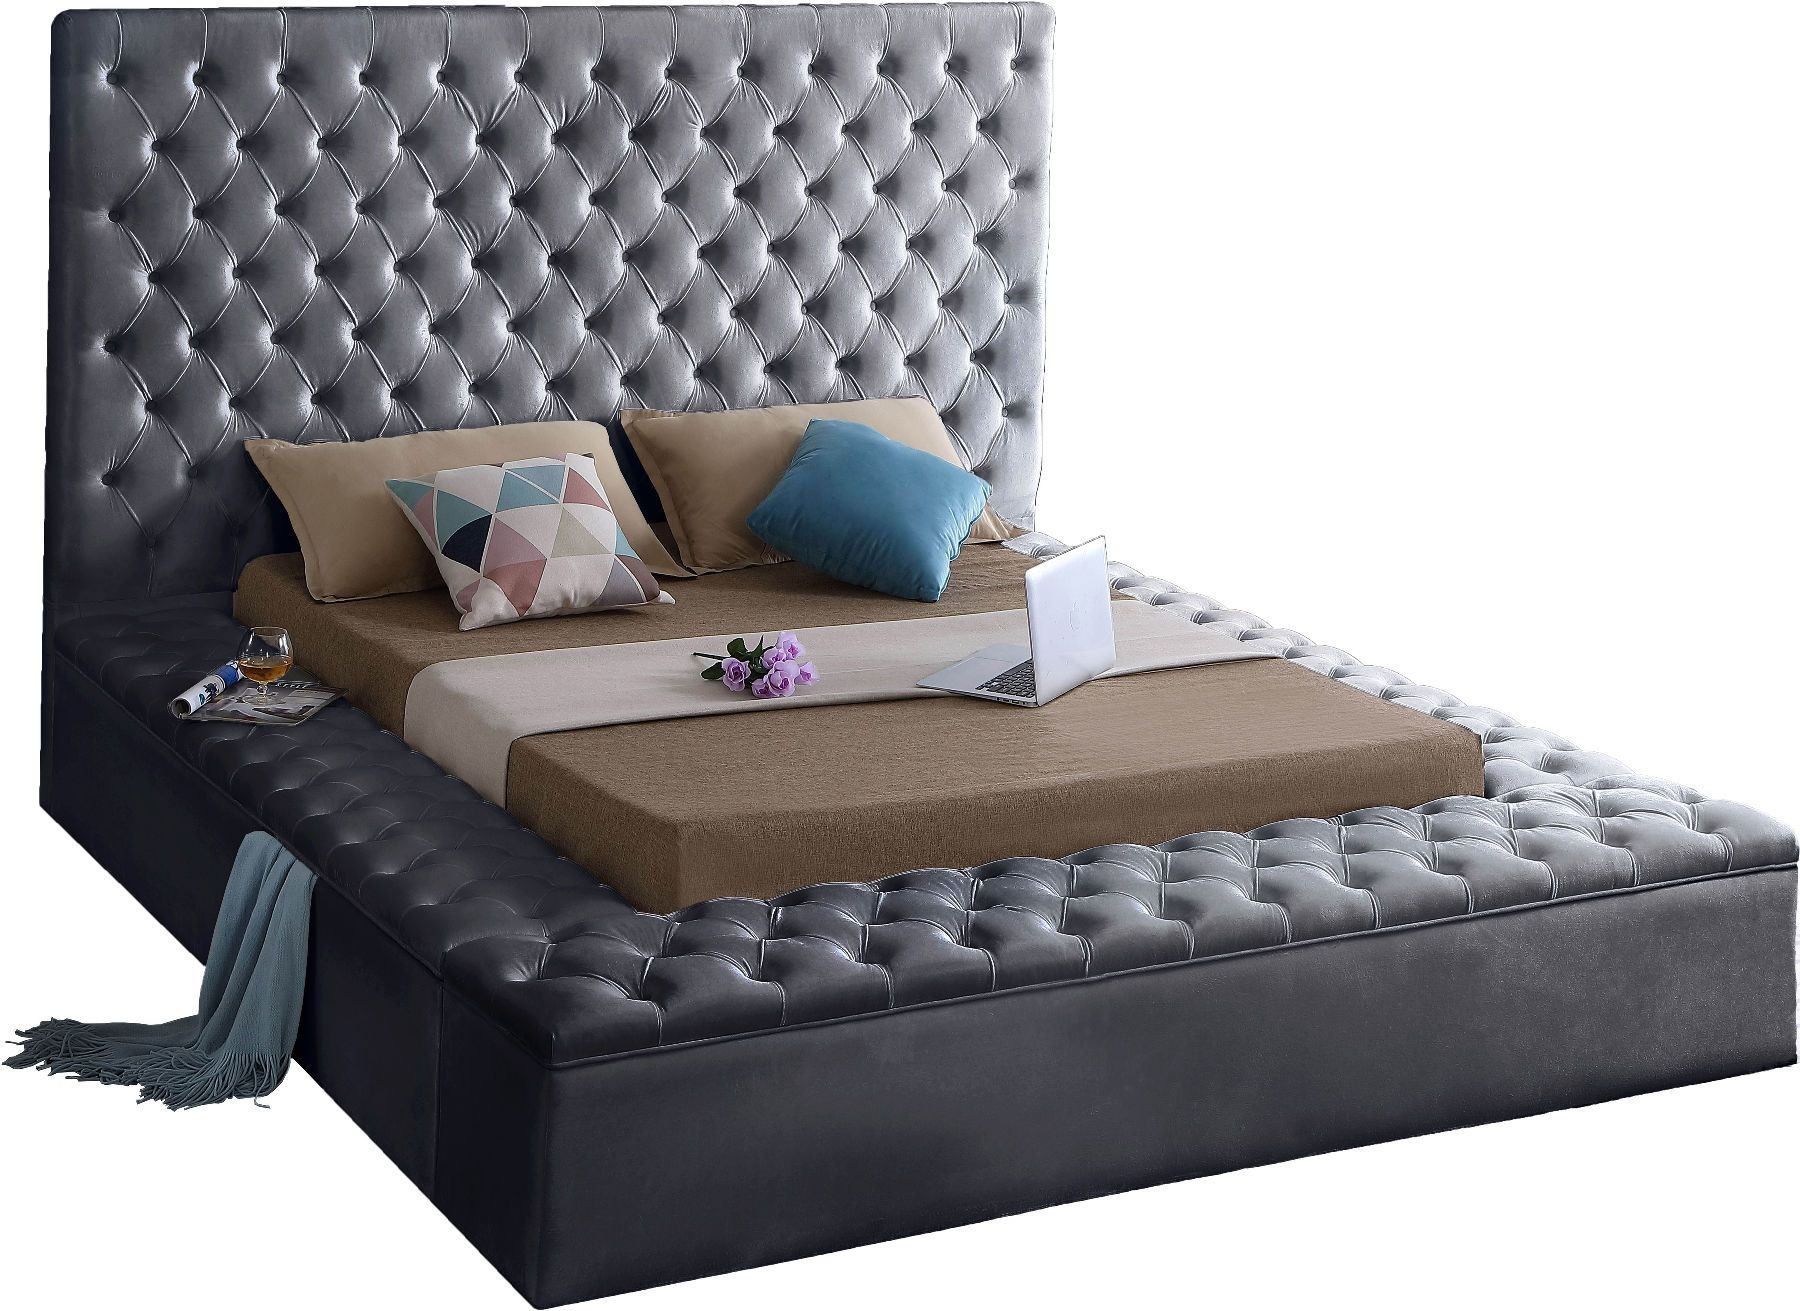 Bliss Gray Full Size Bed in 2020 Velvet upholstered bed